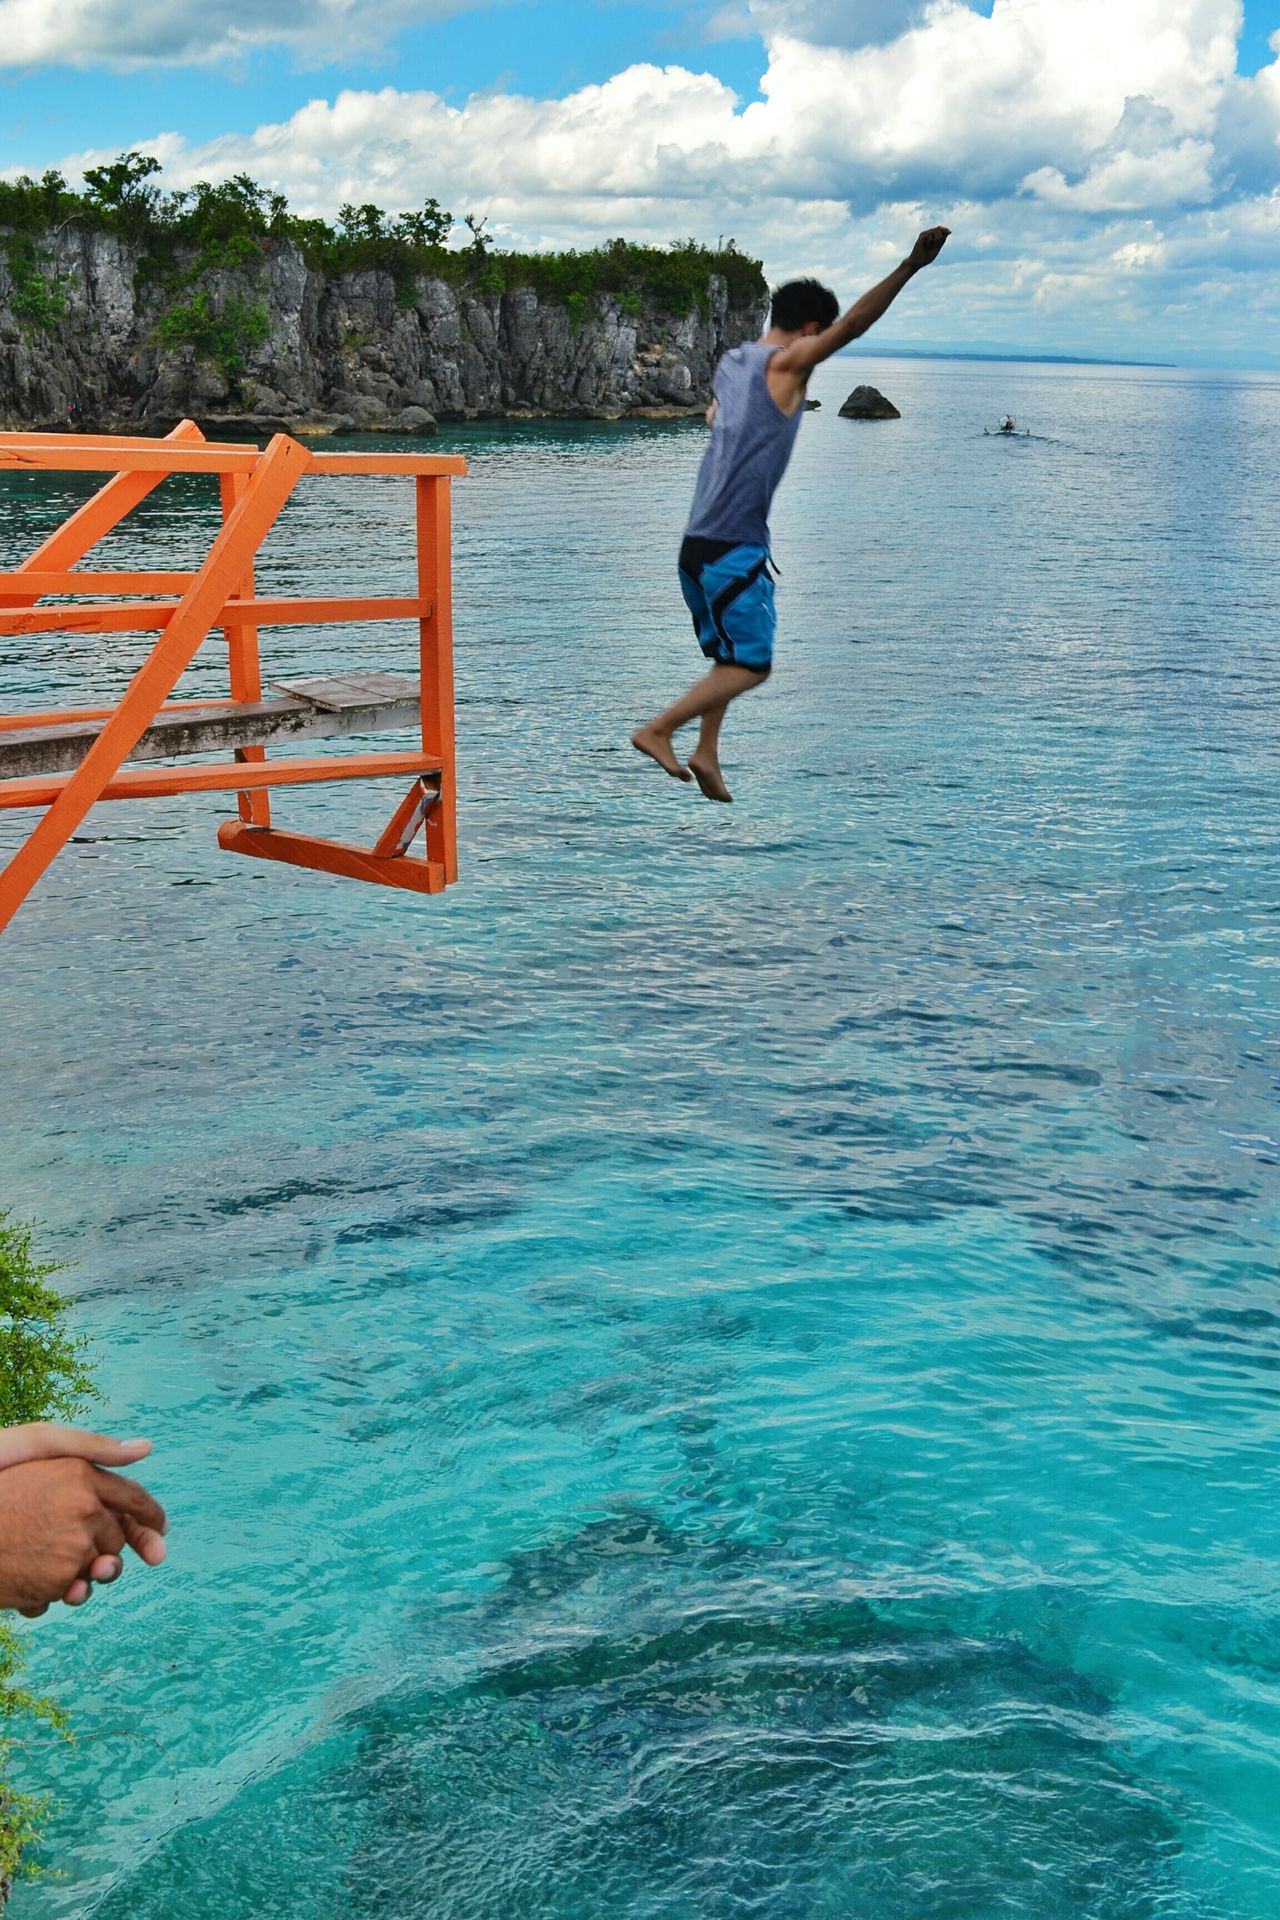 Jumped! EyeemPhilippines Choosephilippines Itsmorefuninthephilippines CliffJumping Sea Adventure Photography In Motion